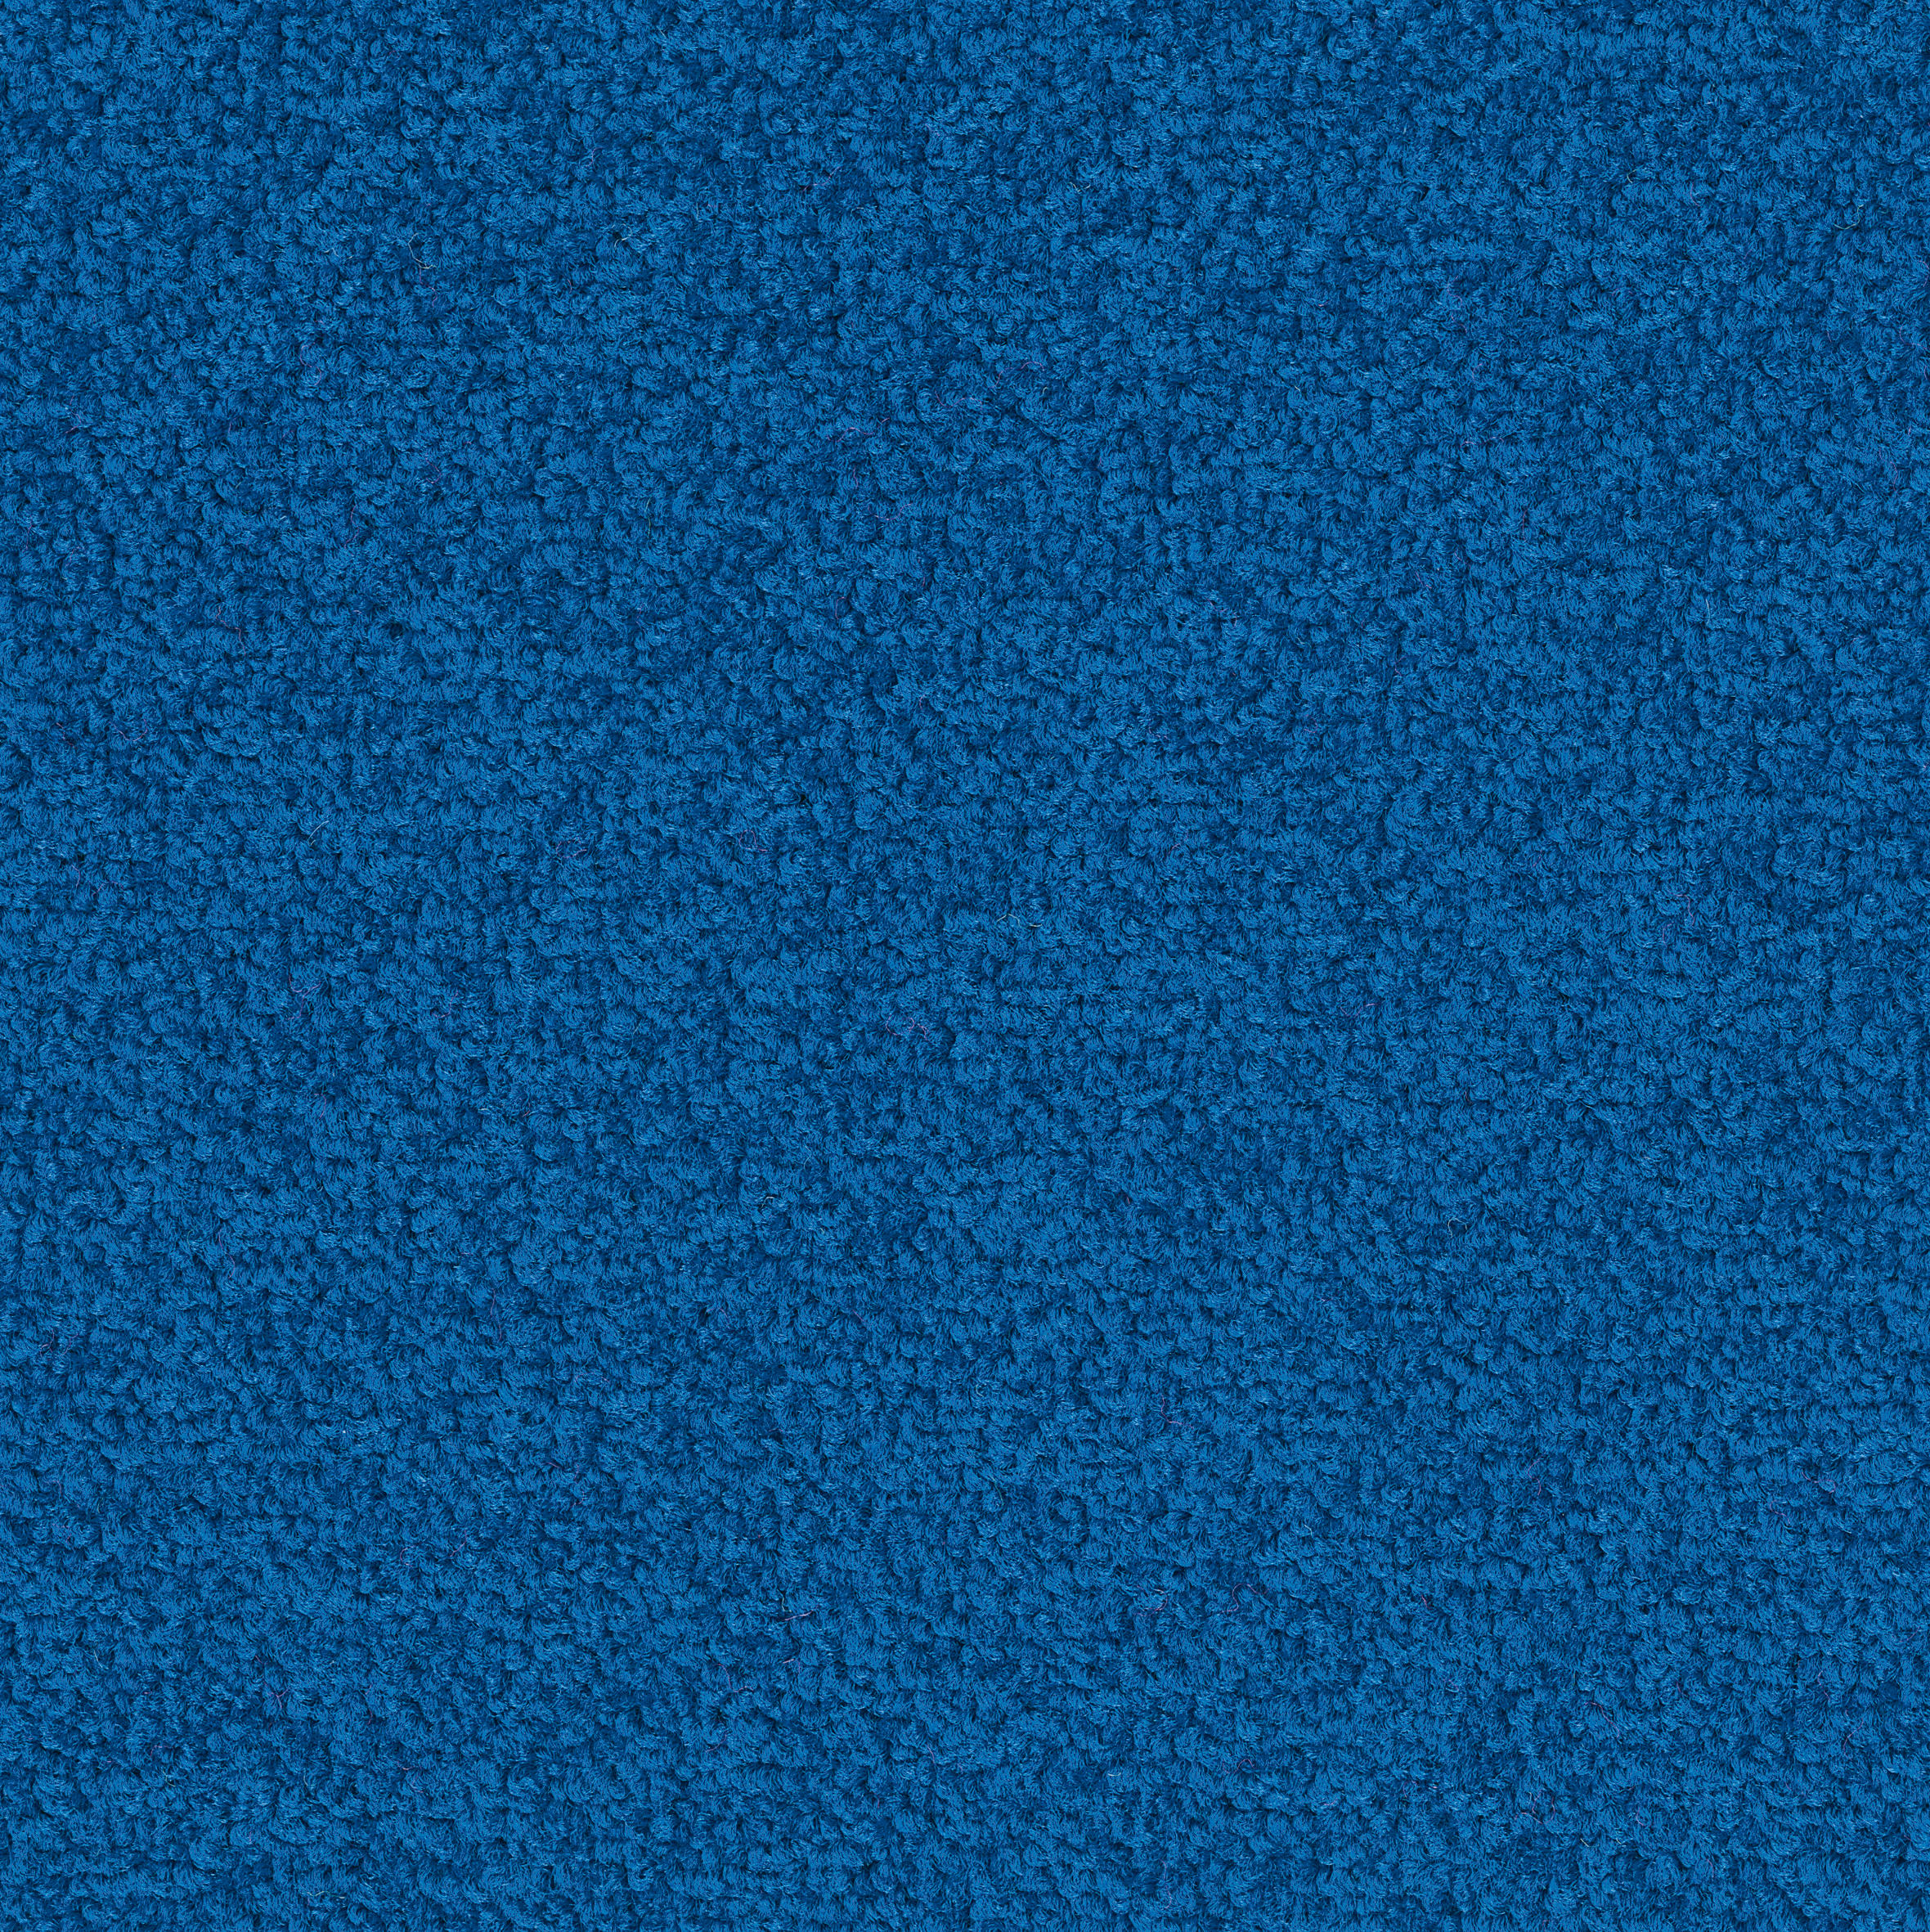 Palatino Tiles Carpet Tiles From Desso Architonic